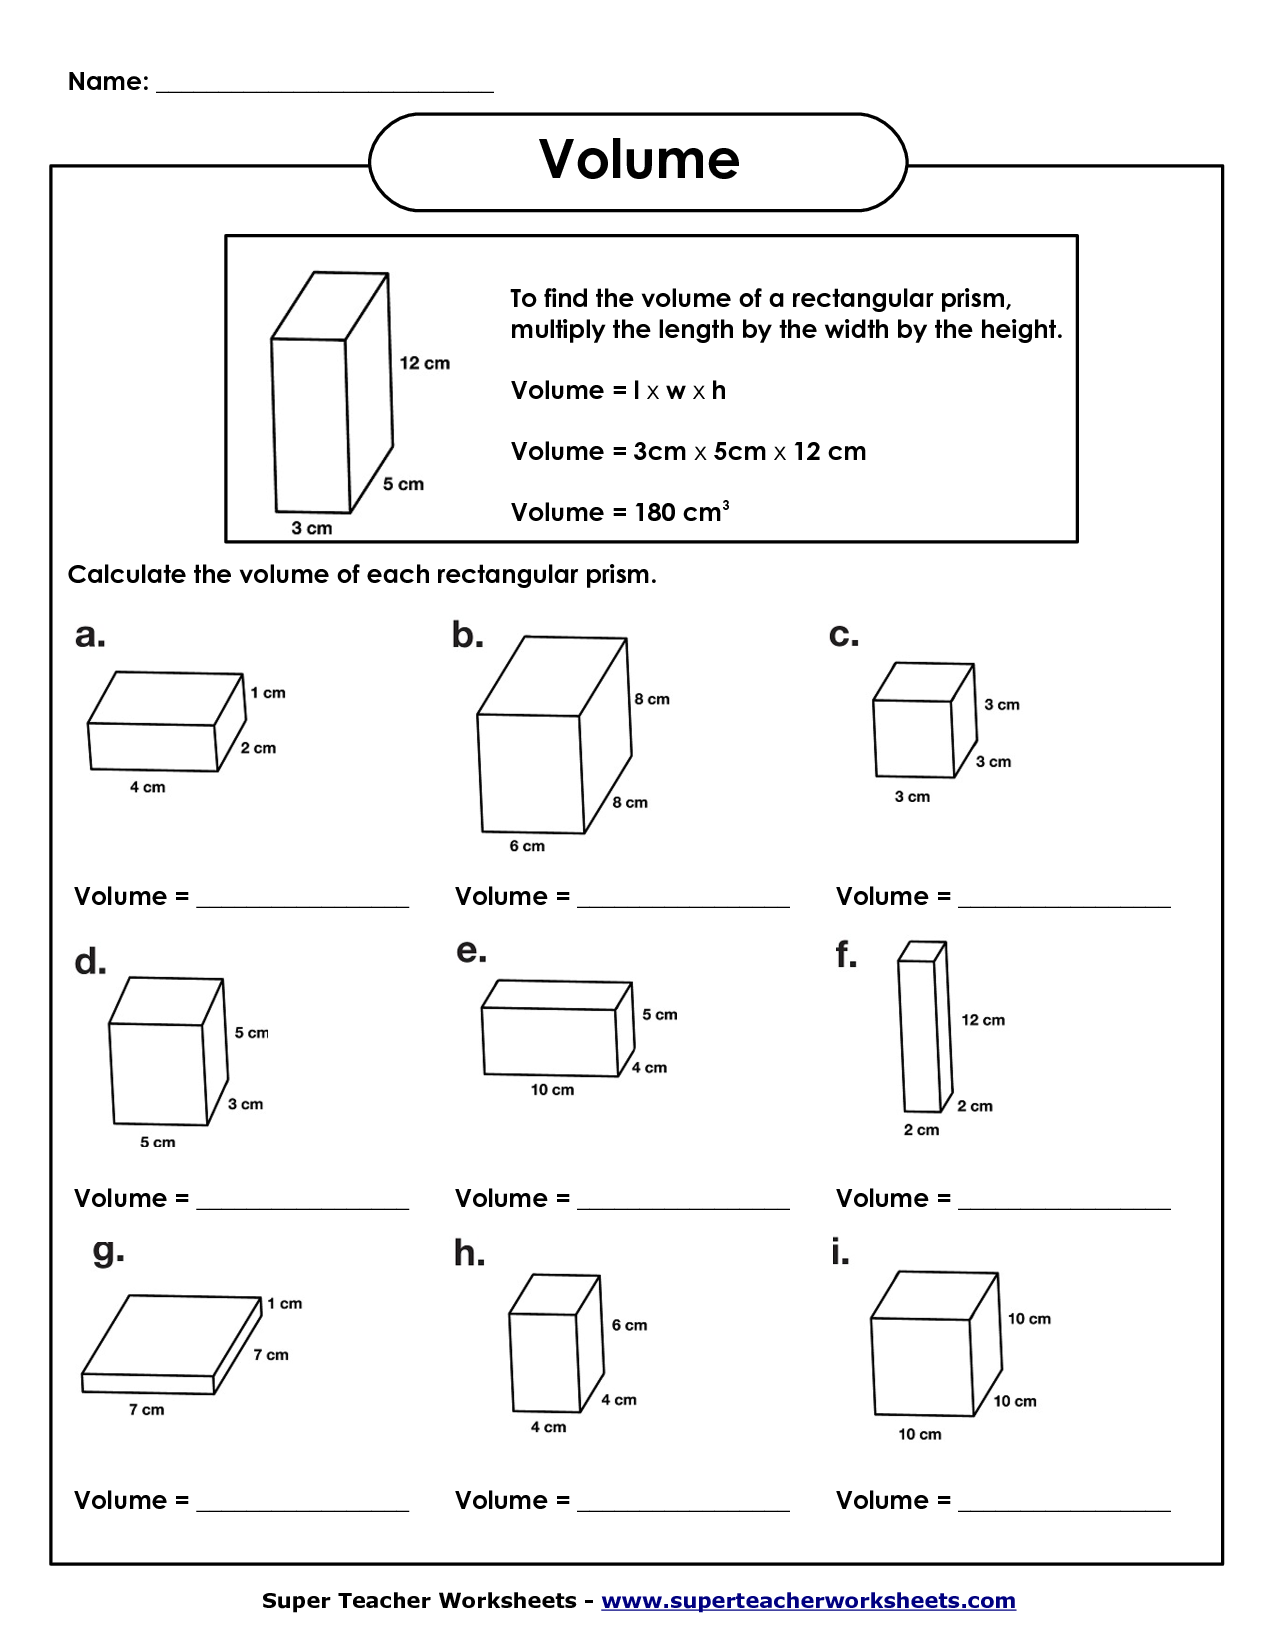 worksheet Volume Of Pyramid Worksheet volume of rectangular prism worksheet worksheets math worksheets